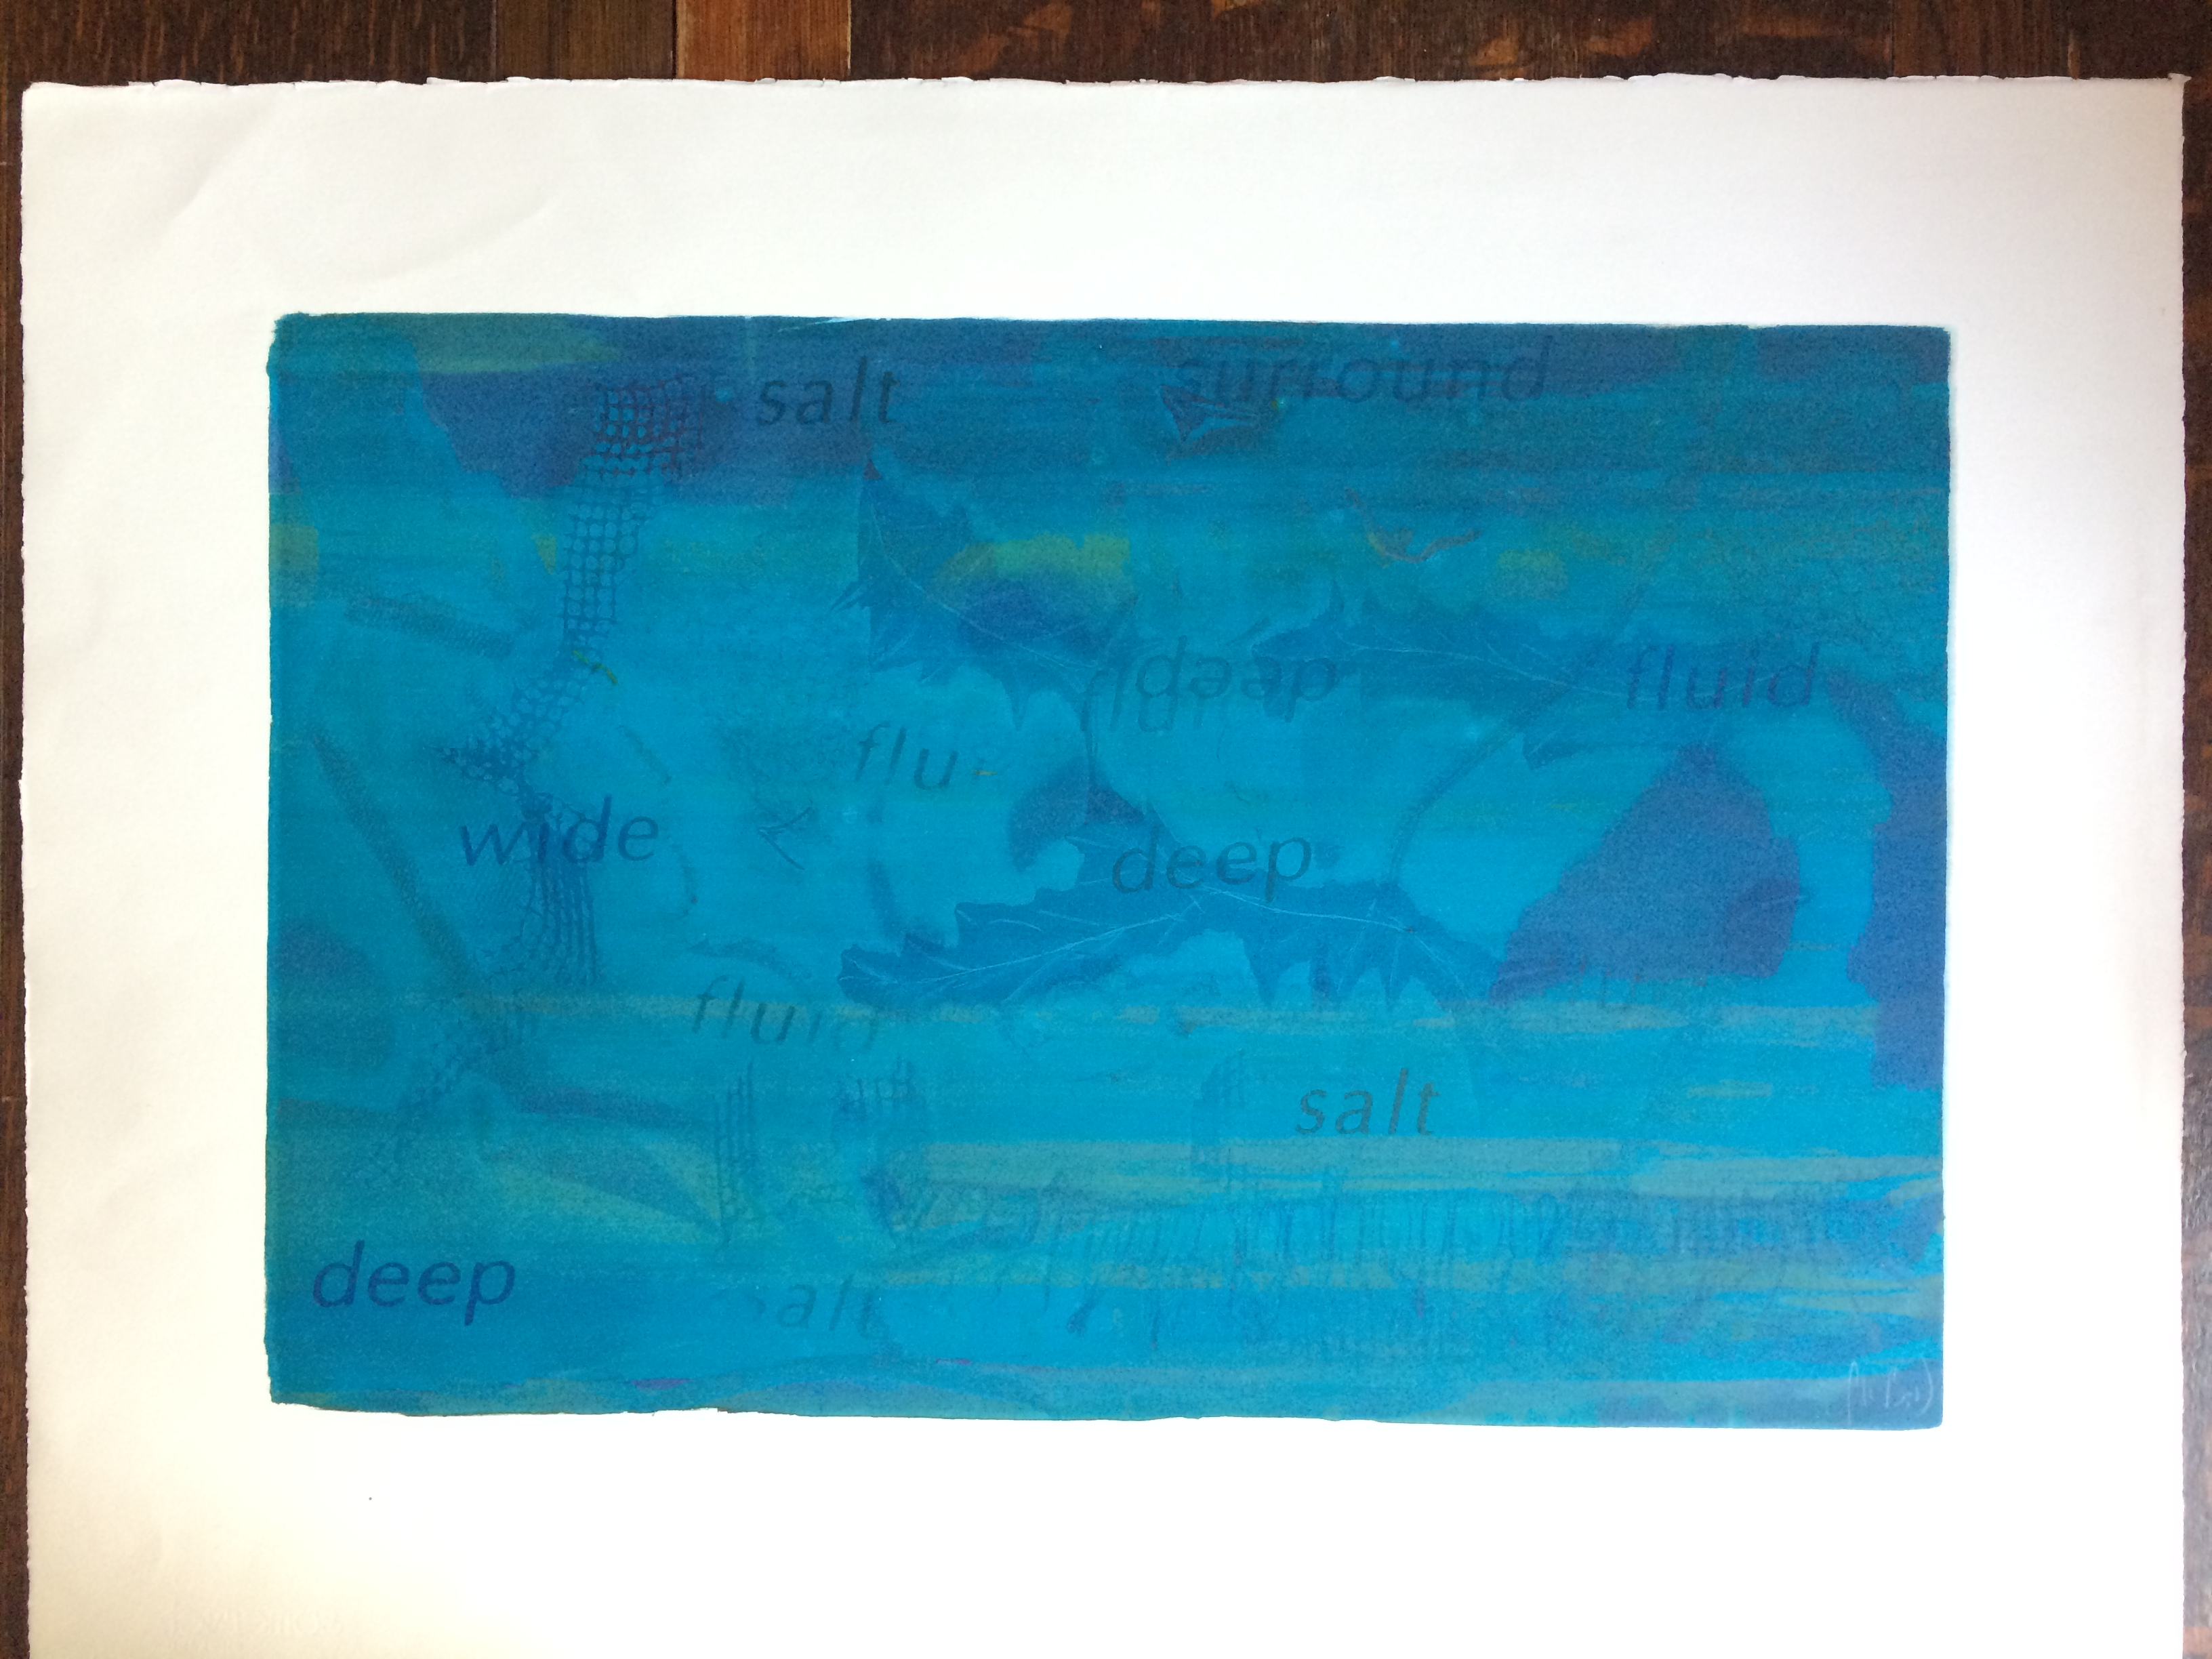 008 Surround 39 x 60 Signed